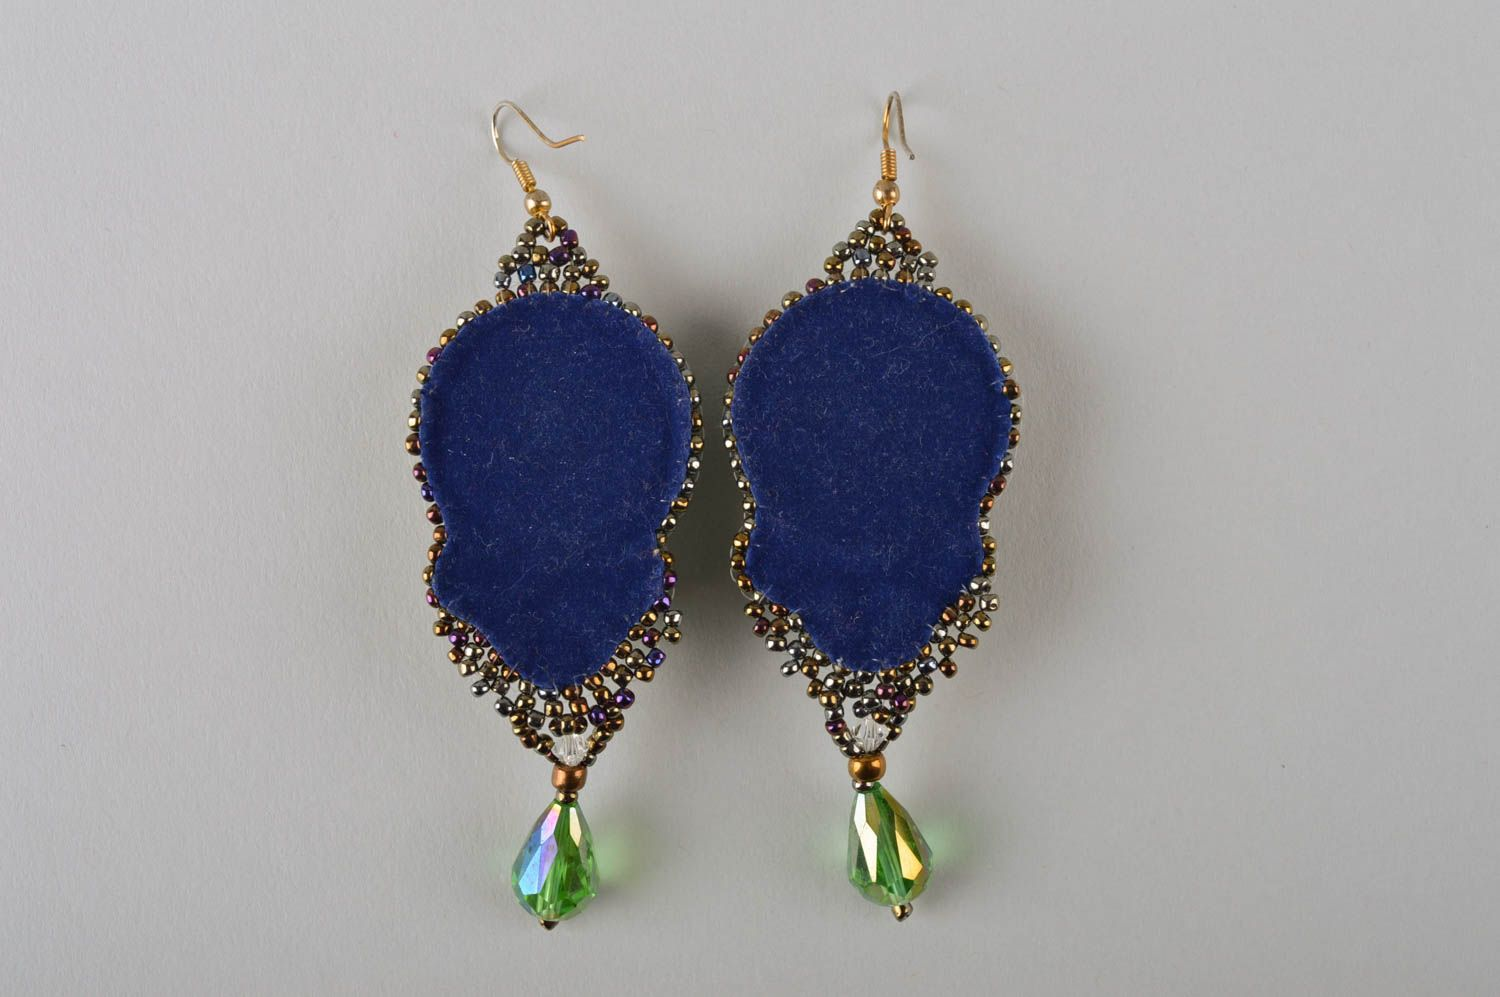 Unusual handmade beaded earrings costume jewelry designs fashion trends photo 5